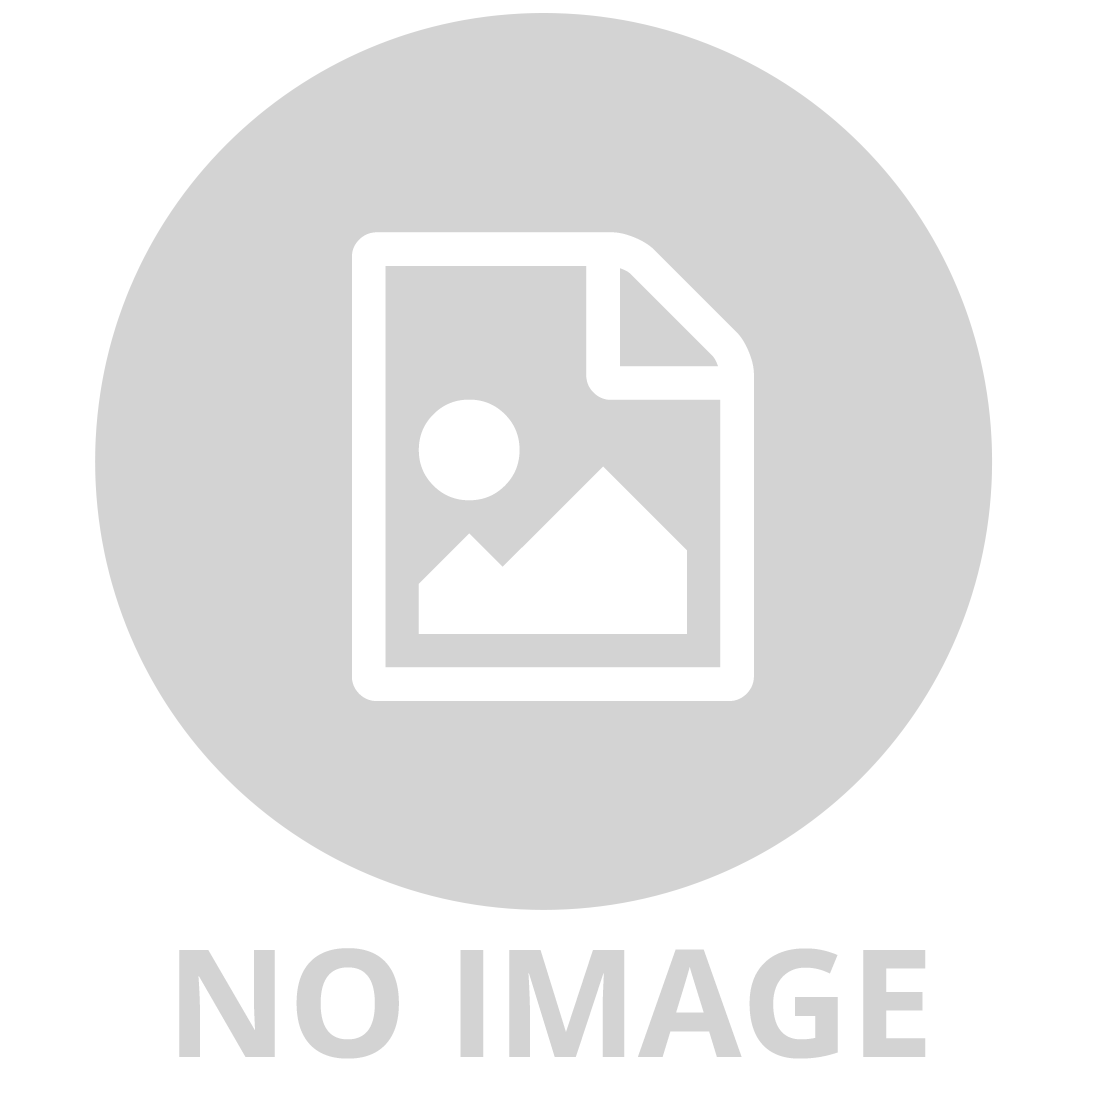 TIKK TOKK BOSS WOODEN TABLE AND CHAIRS